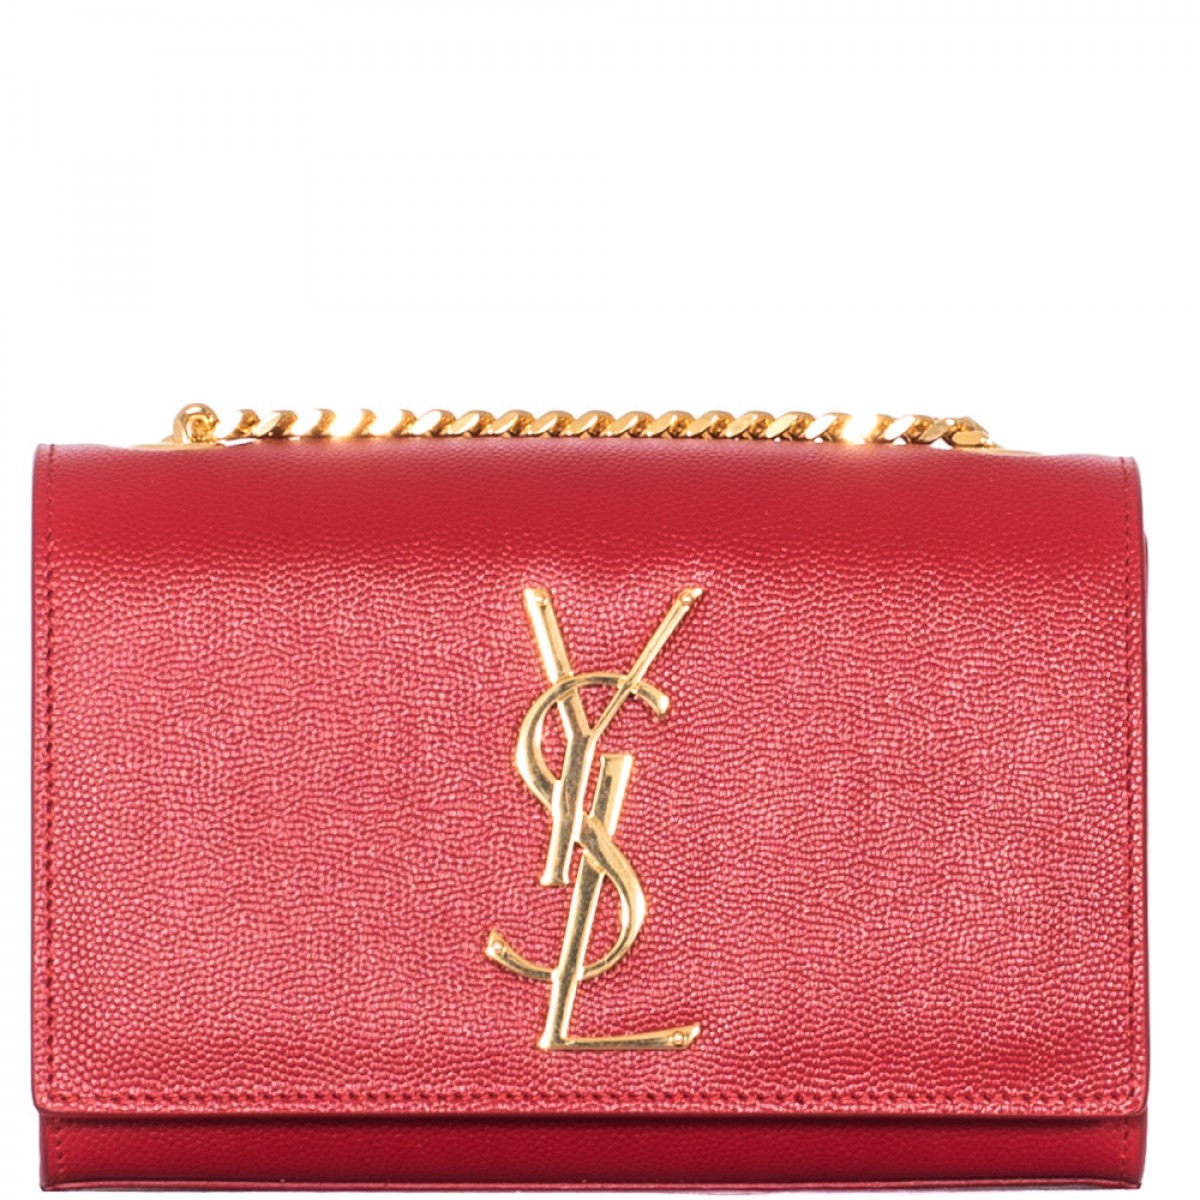 ysl purple shoes - saint laurent classic monogram saint laurent clutch in fuchsia ...